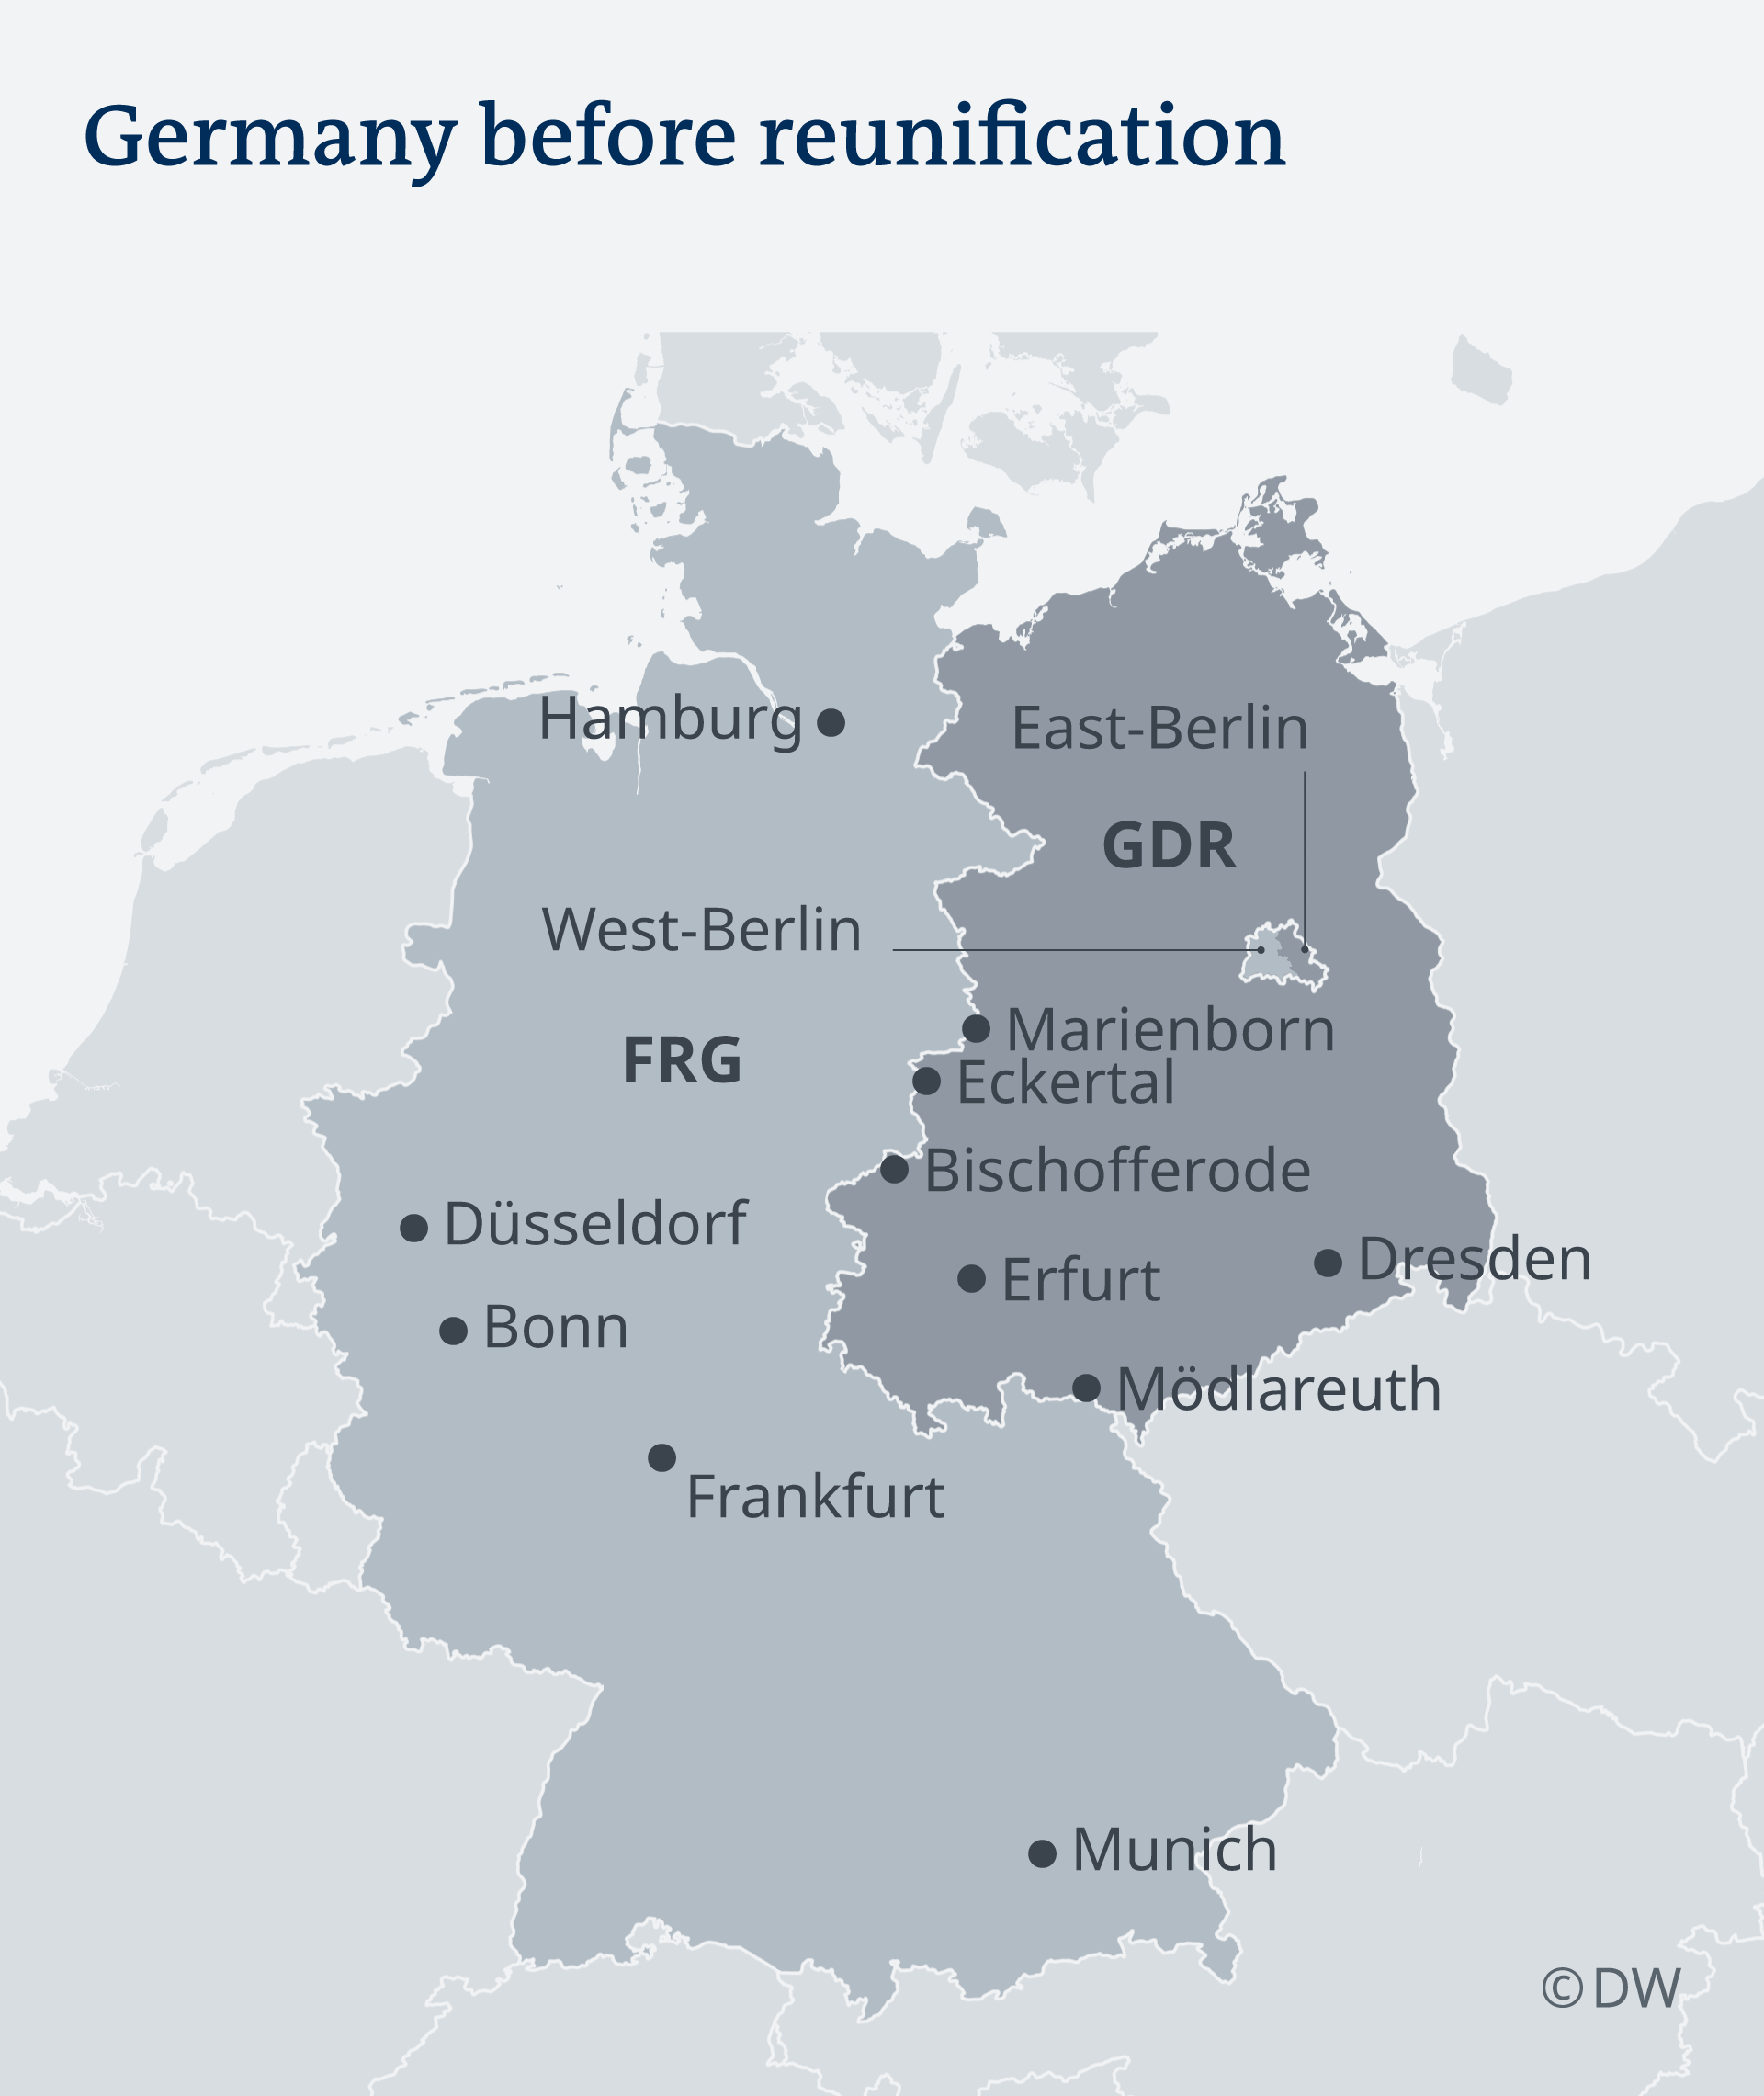 Germany before reunification in 1989